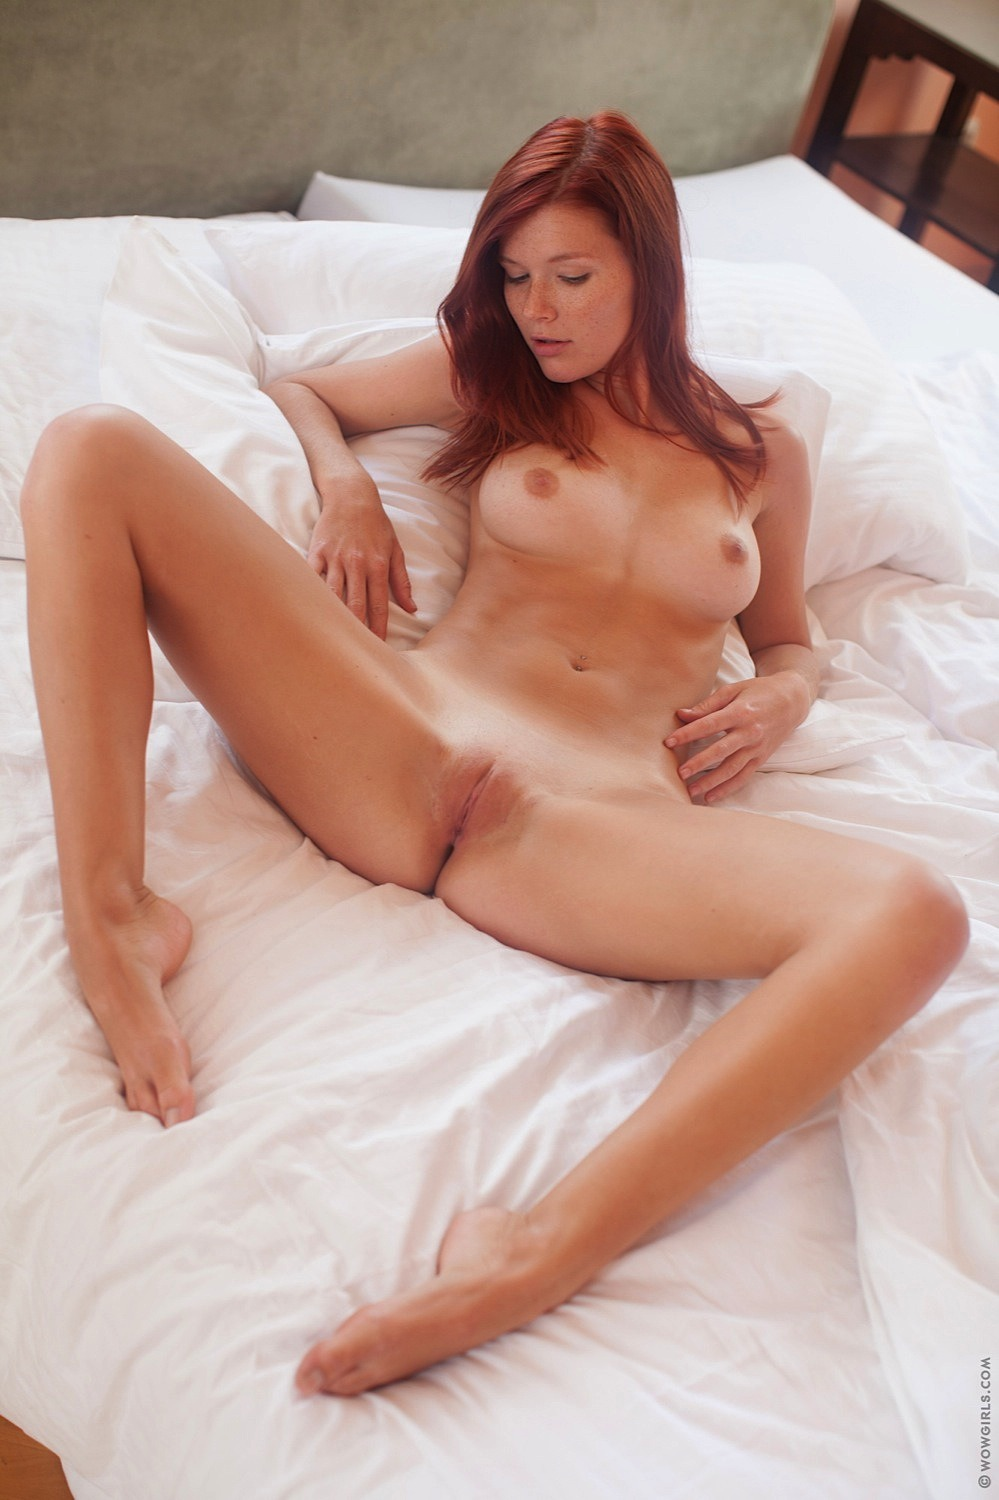 free xhamsters busty porn xhamster busty sex top live adult